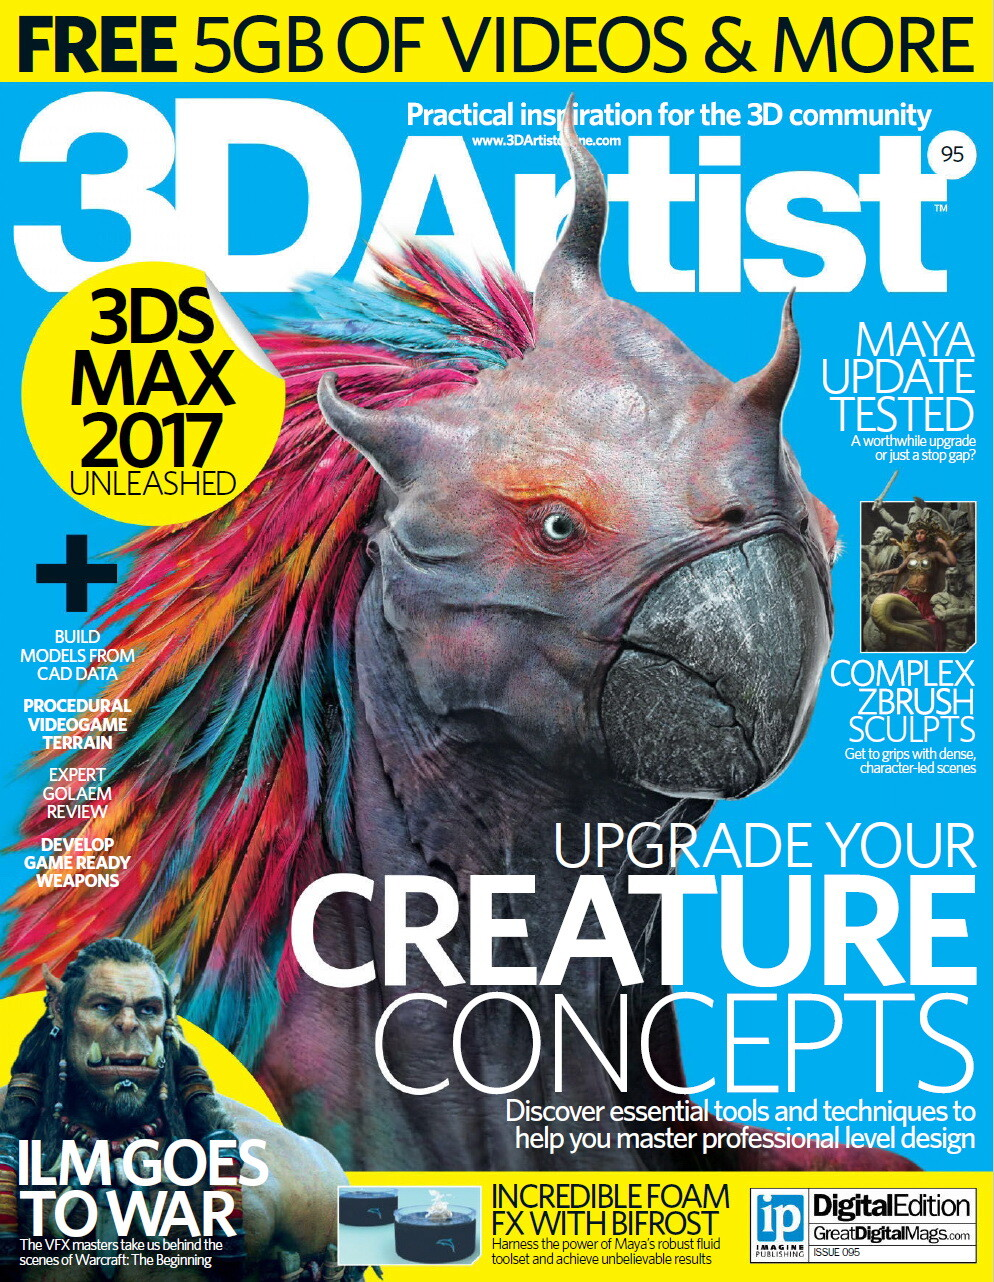 Jia hao 3d artist issue 95 cover